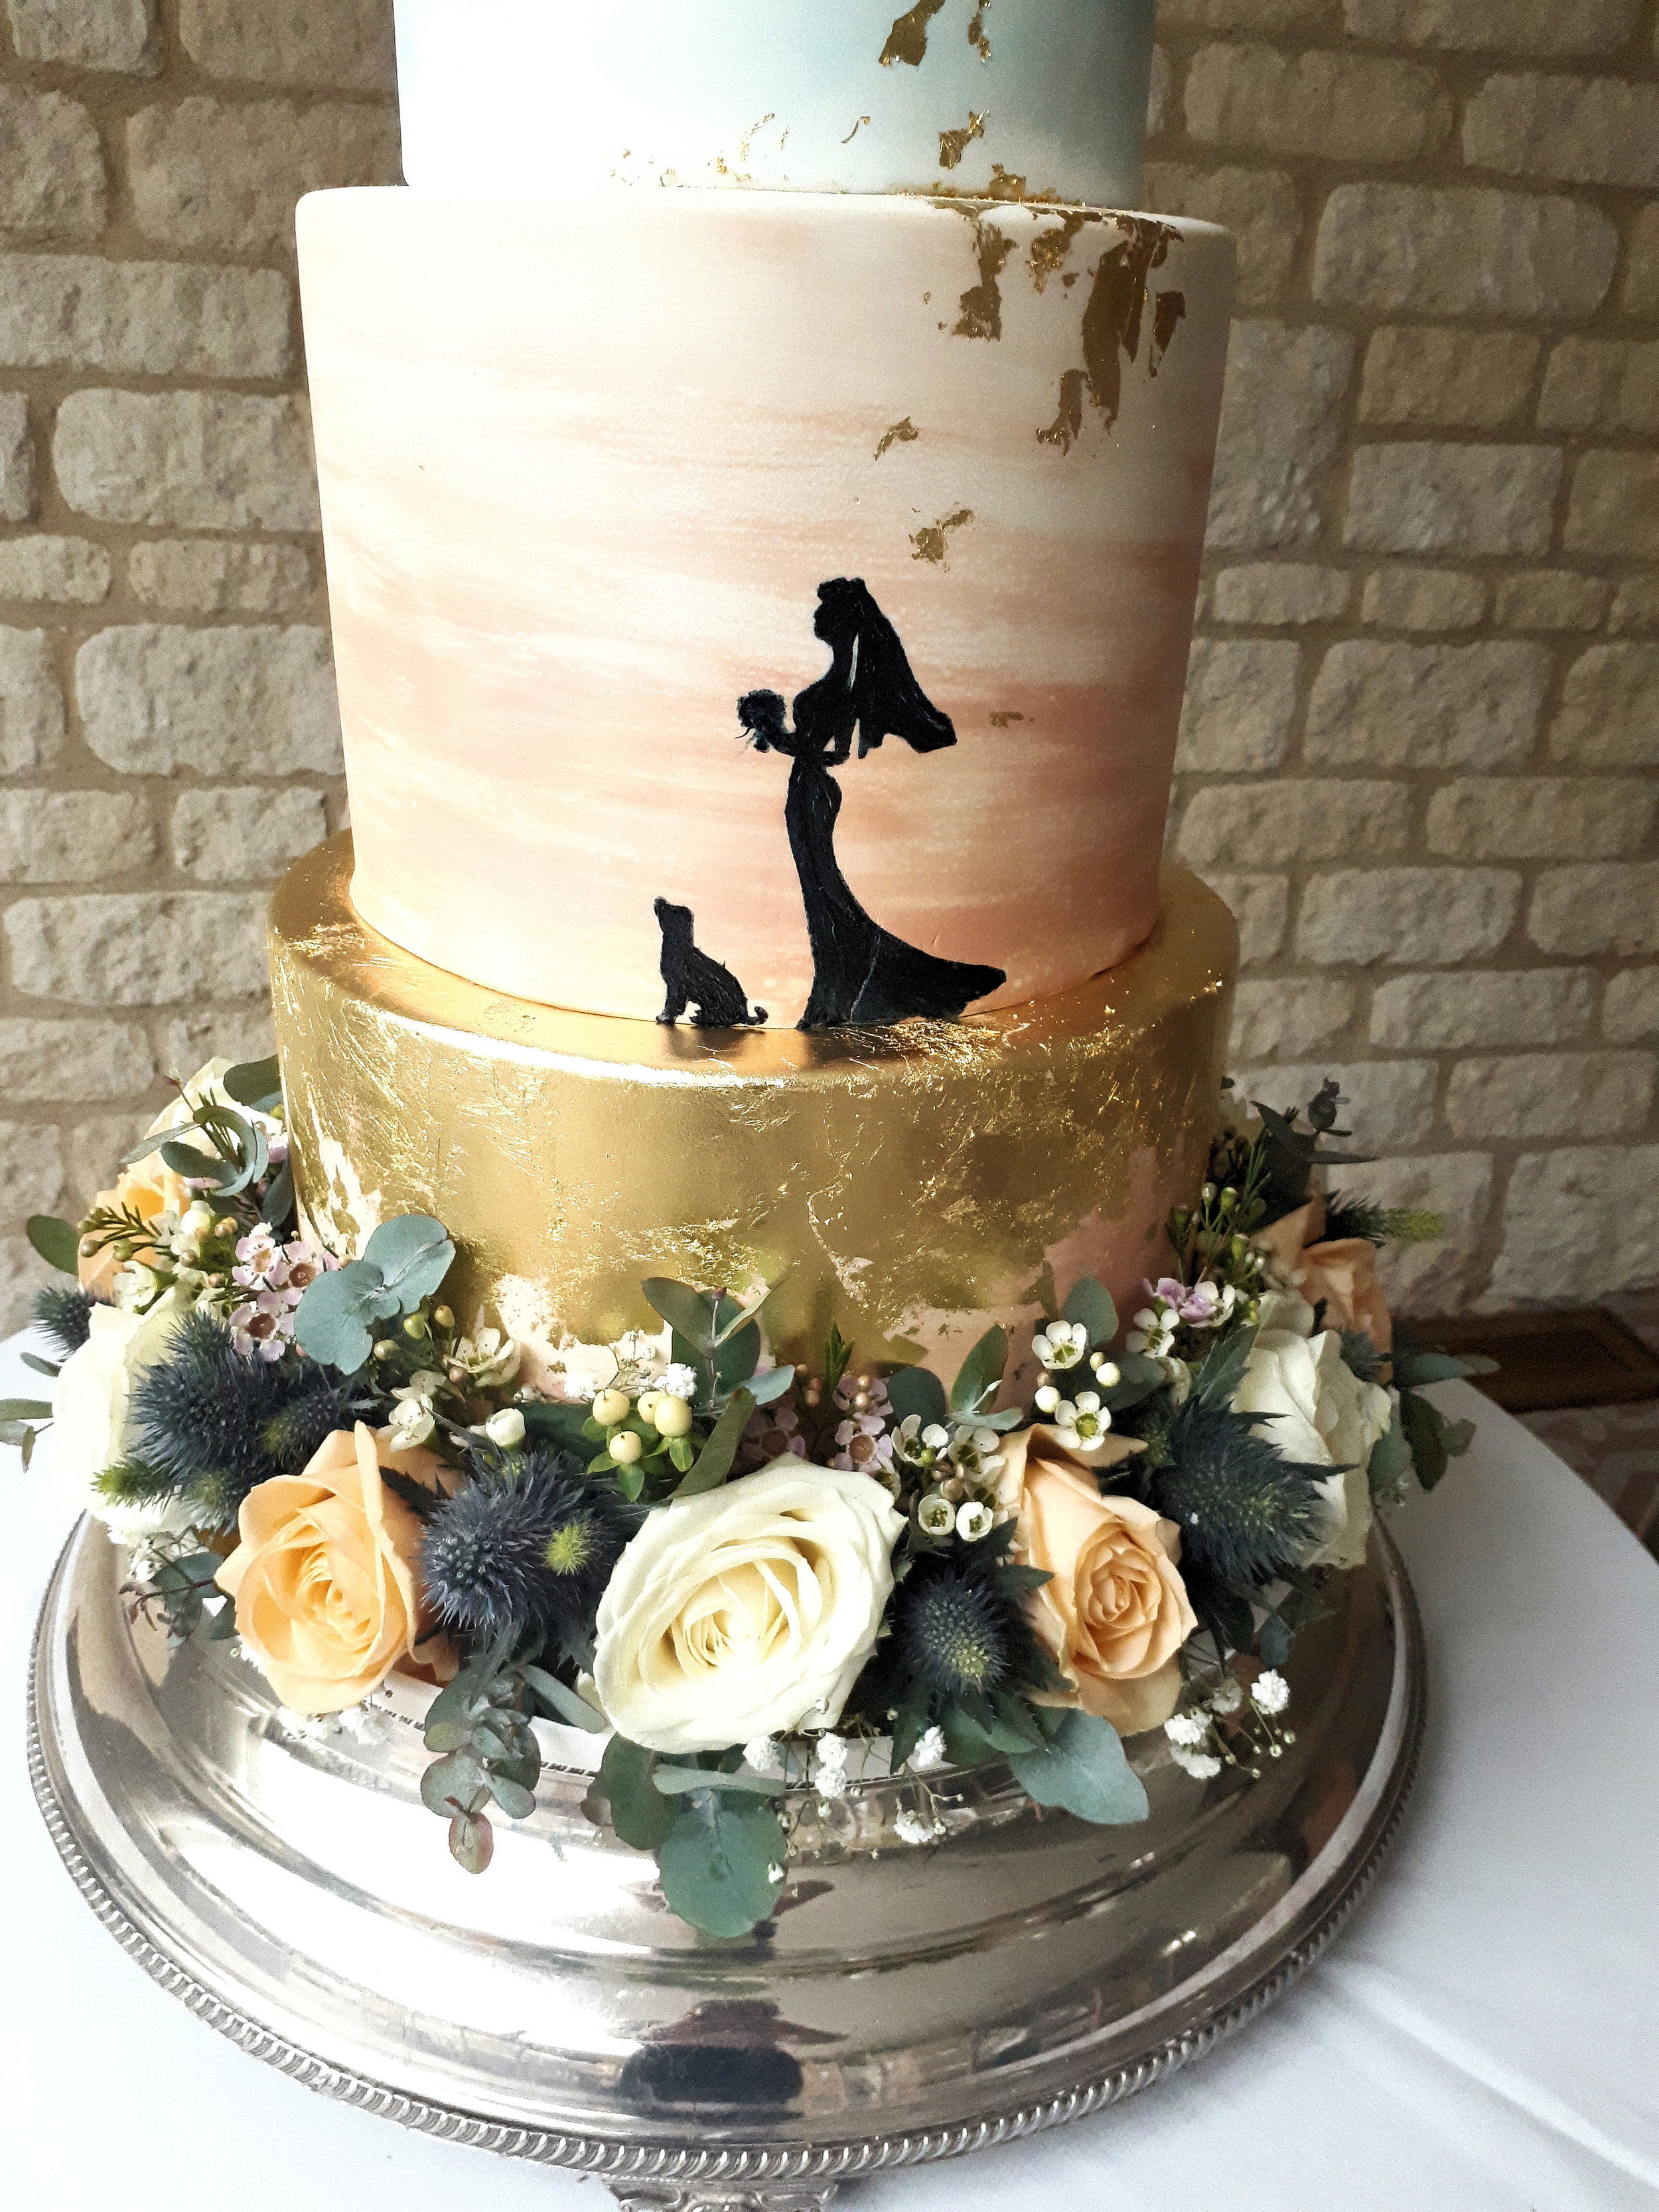 Silhouette Wedding Cake 2.jpg